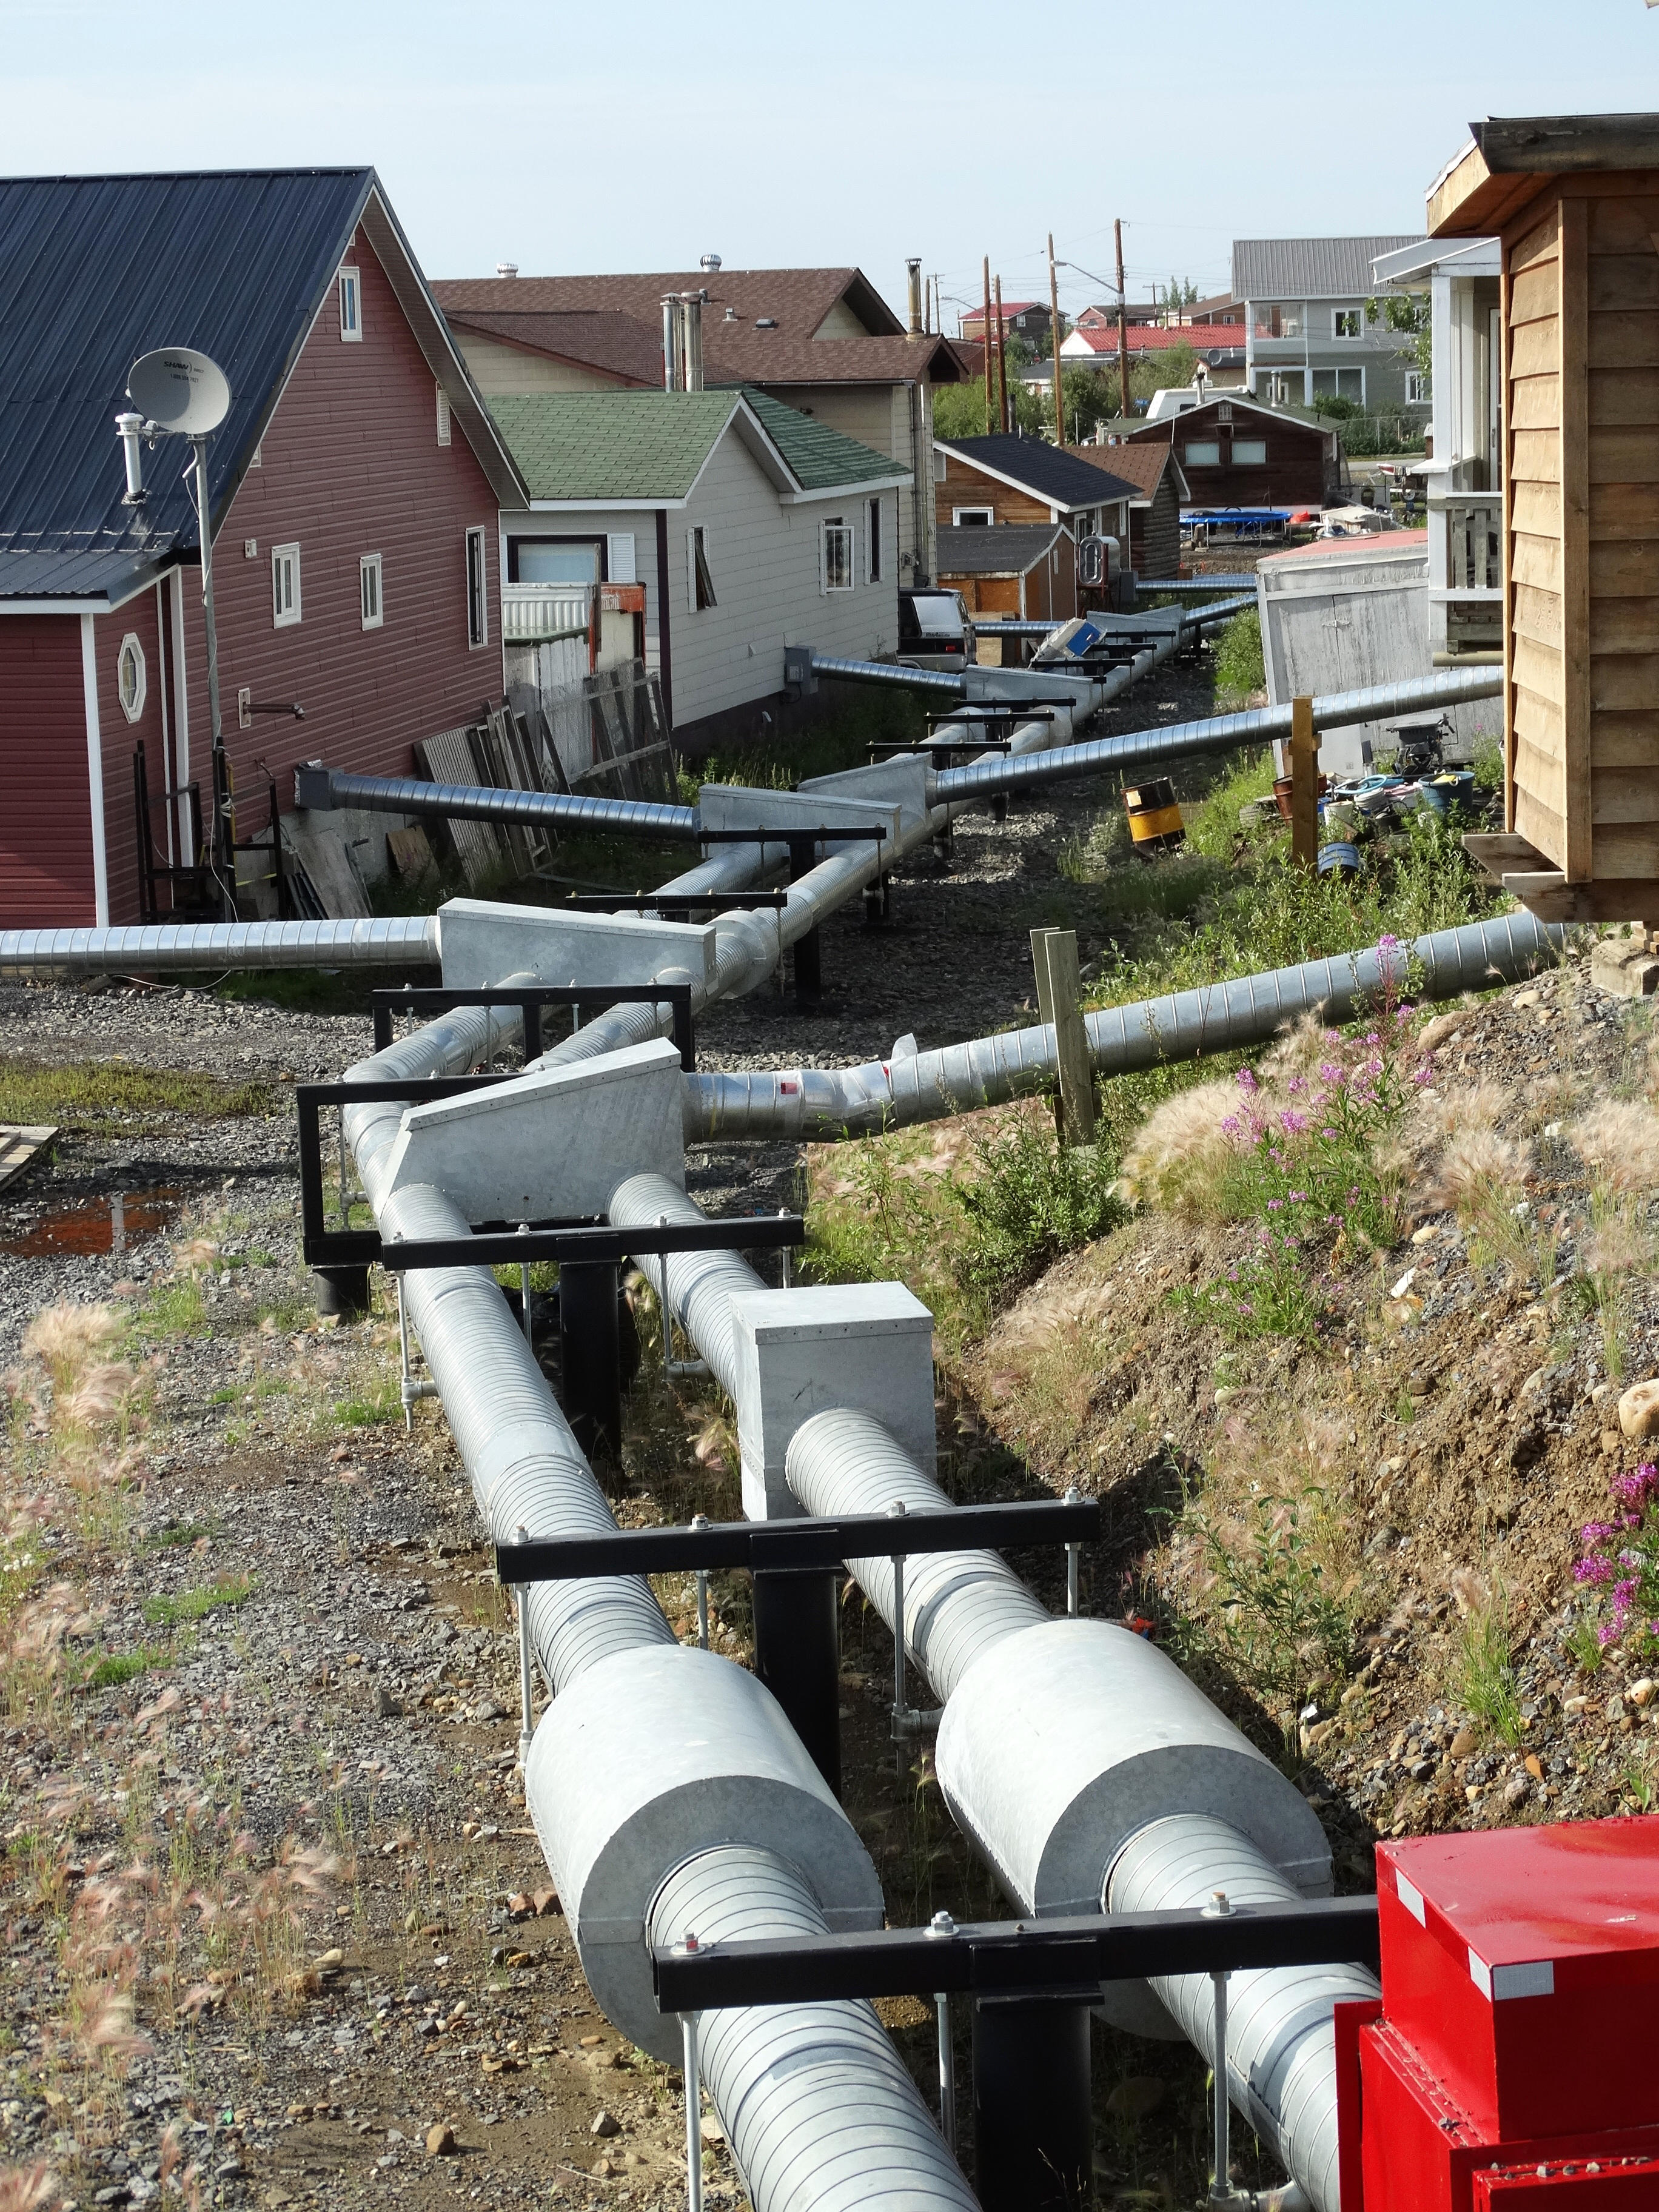 File Above Ground Plumbing And Heating Pipes Inuvik Northwest Territories Canada